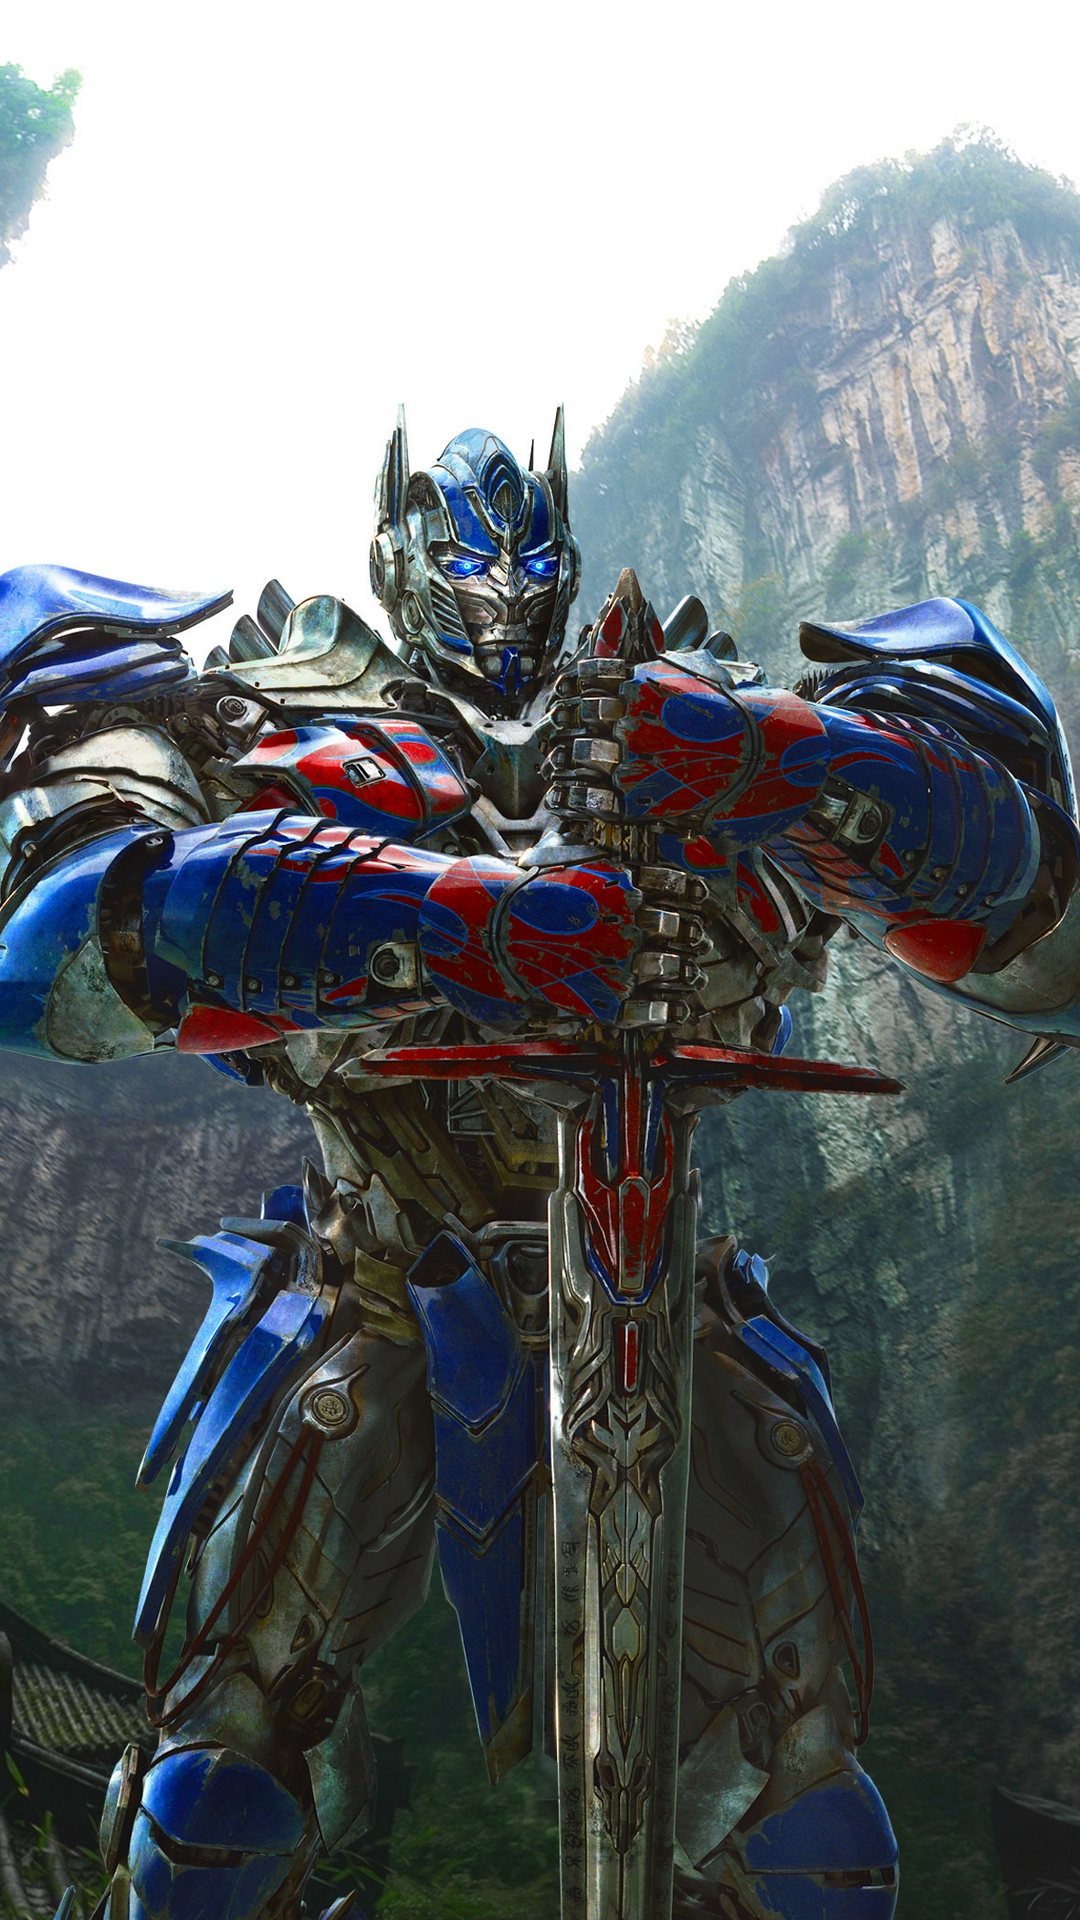 Wallpaper Transformers Age Of Extinction, Transformers - Optimus Prime Wallpaper Transformers - HD Wallpaper